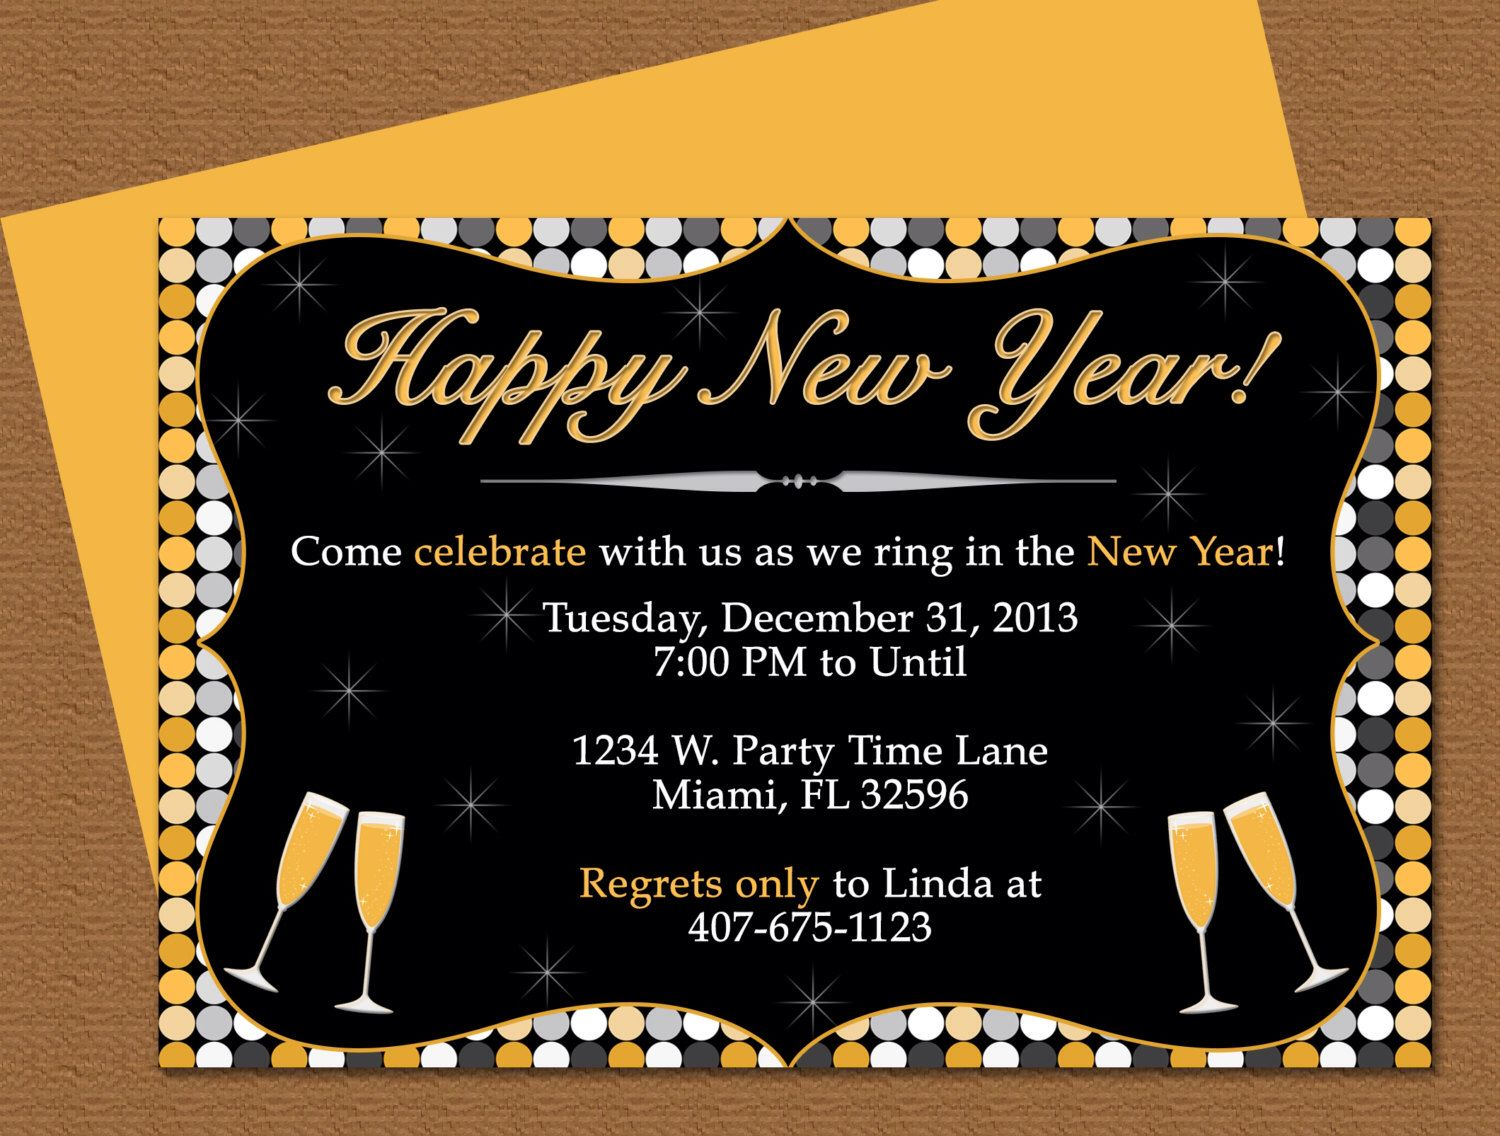 happy new year invitation editable template microsoft word format by mydiydesigns on etsy https